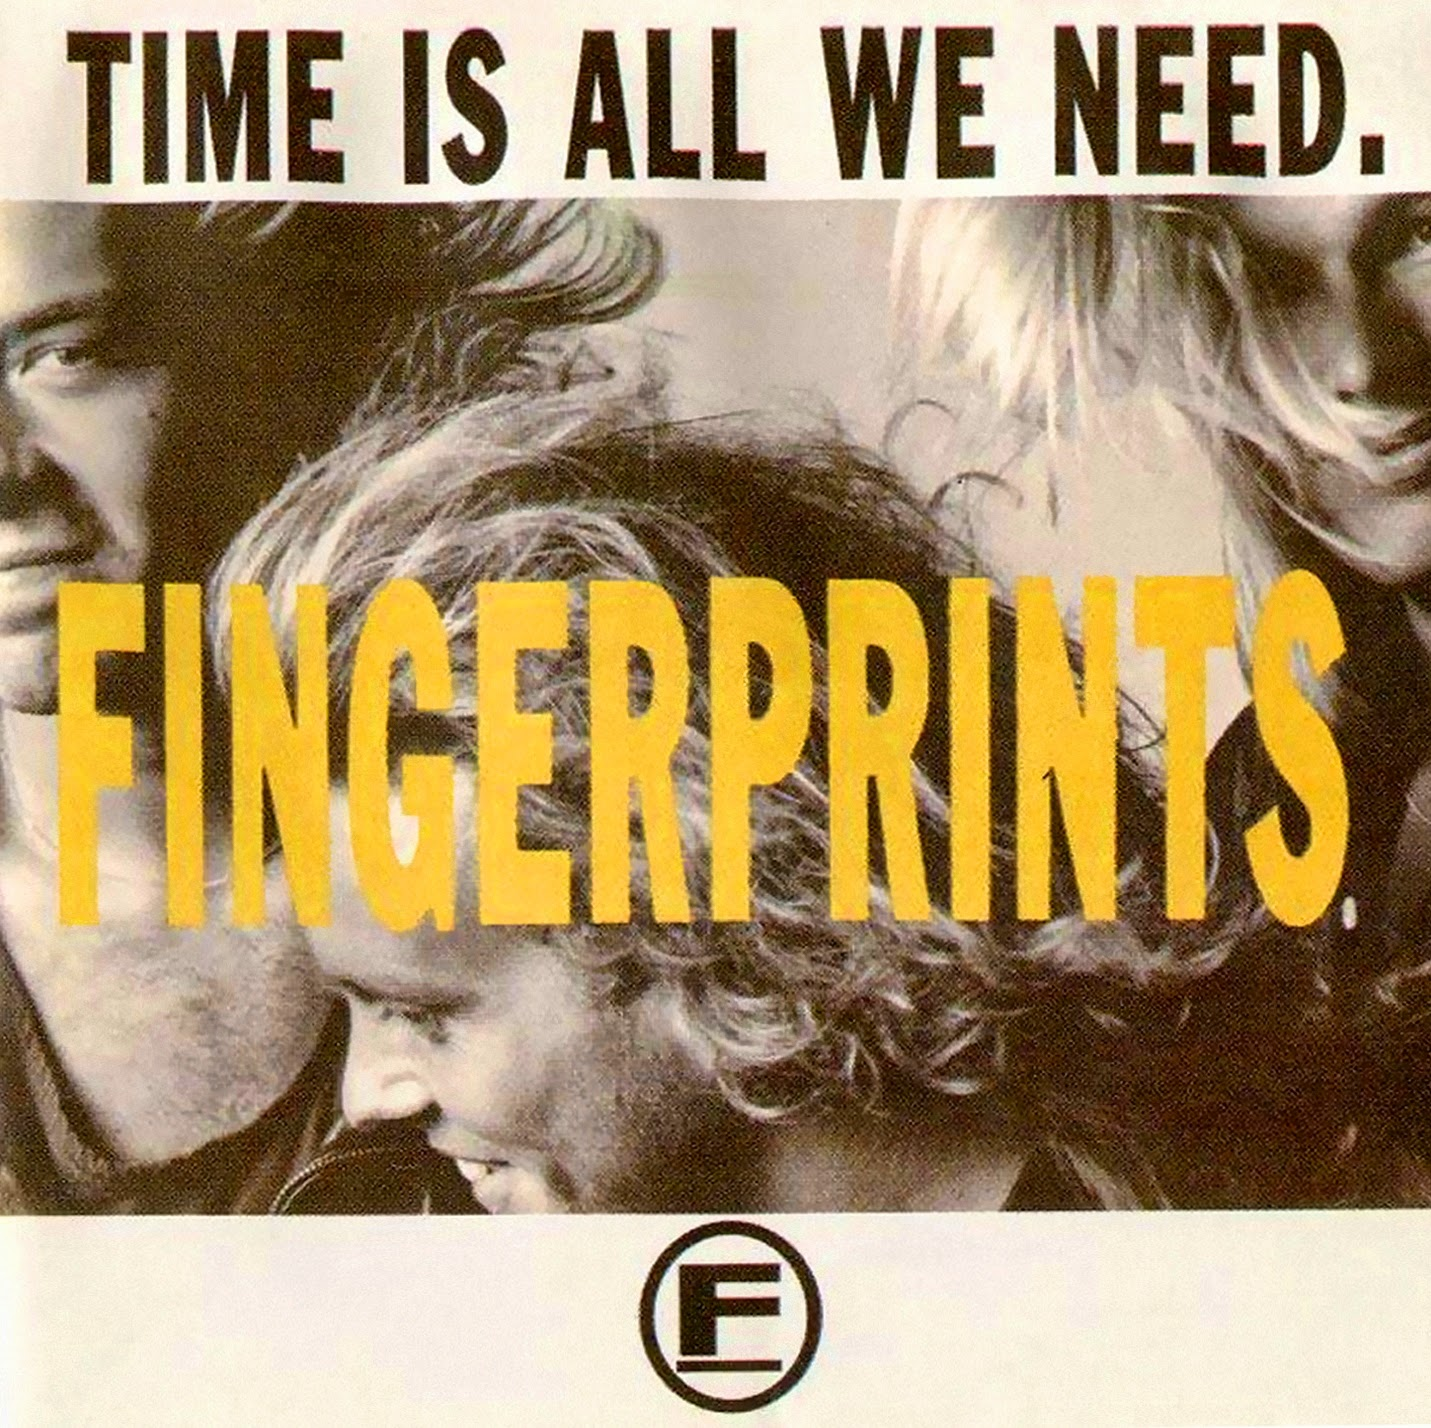 Fingerprints Time is all we need 1989 aor melodic rock music blogspot full albums bands